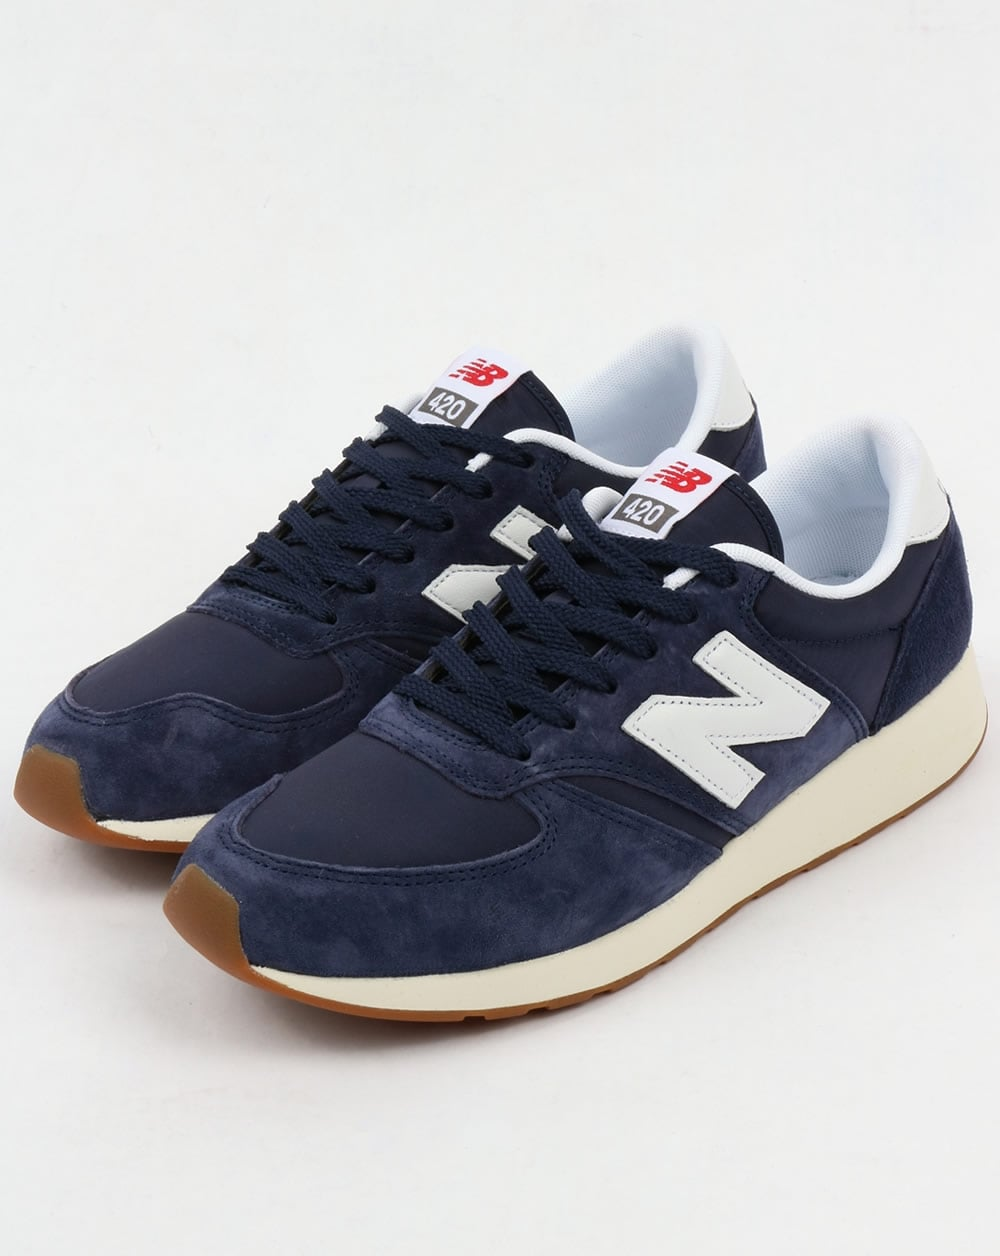 new balance 420 re engineered suede trainers navy white blue shoes running. Black Bedroom Furniture Sets. Home Design Ideas